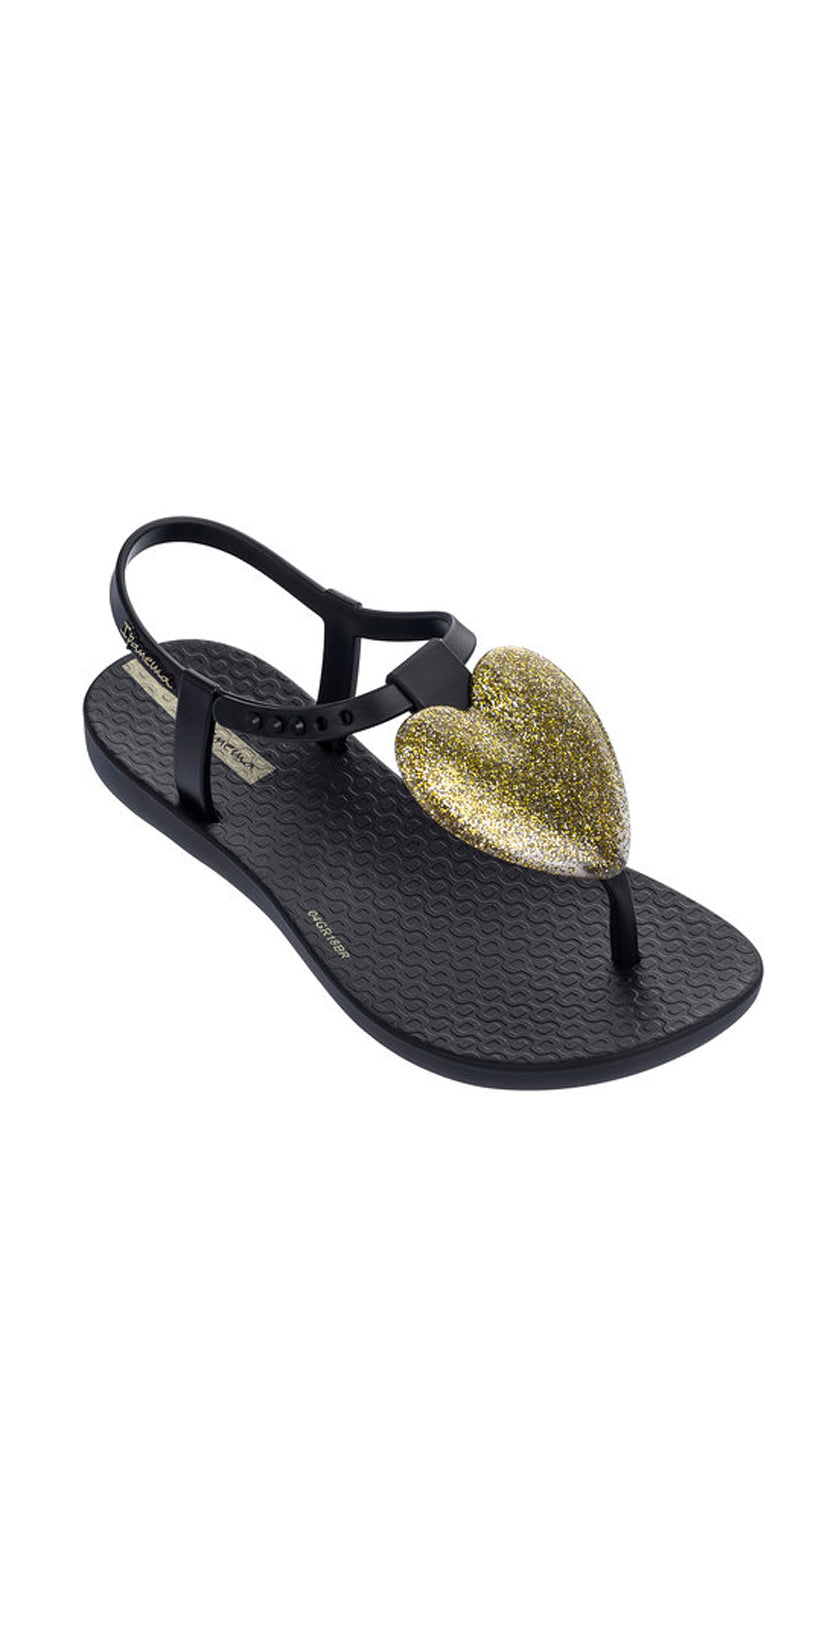 iPanema Kids Gold Heart Love Sandal in Black